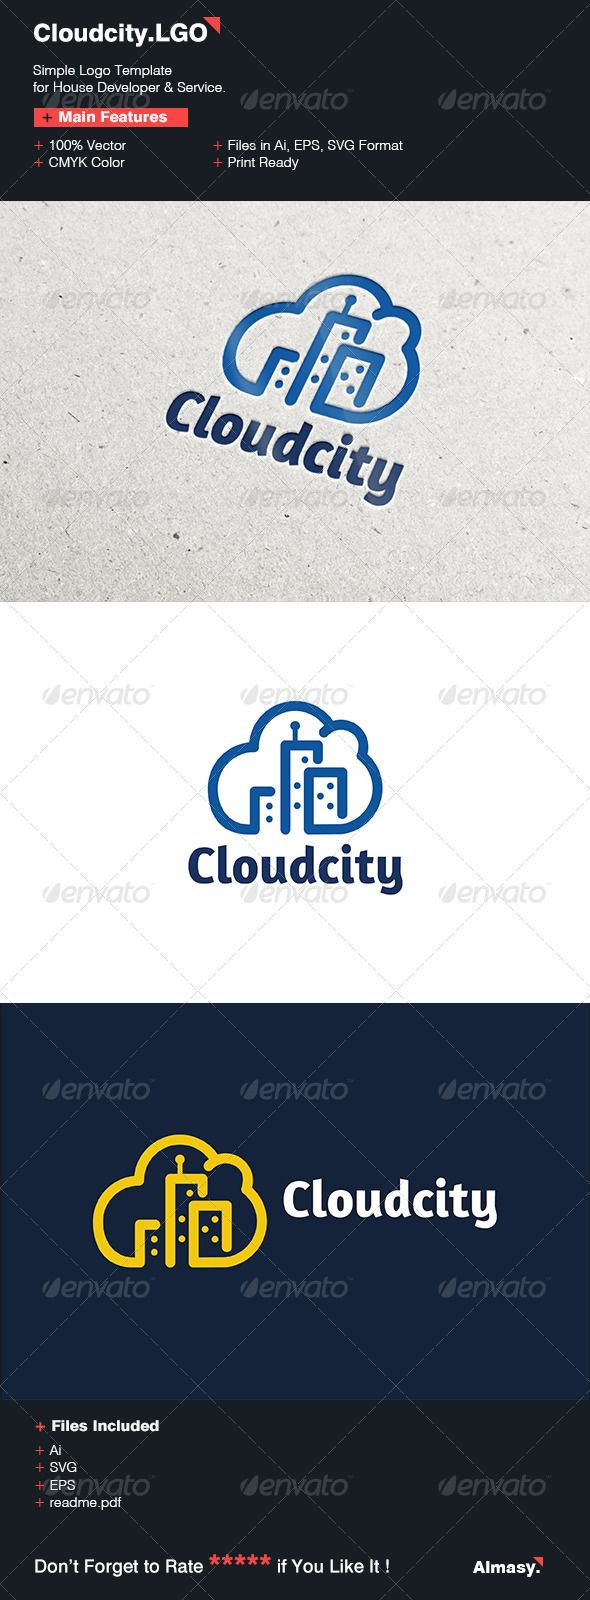 Cloud City Logo Template — Vector EPS #technology #real estate • Available here → https://graphicriver.net/item/cloud-city-logo-template/6675880?ref=pxcr